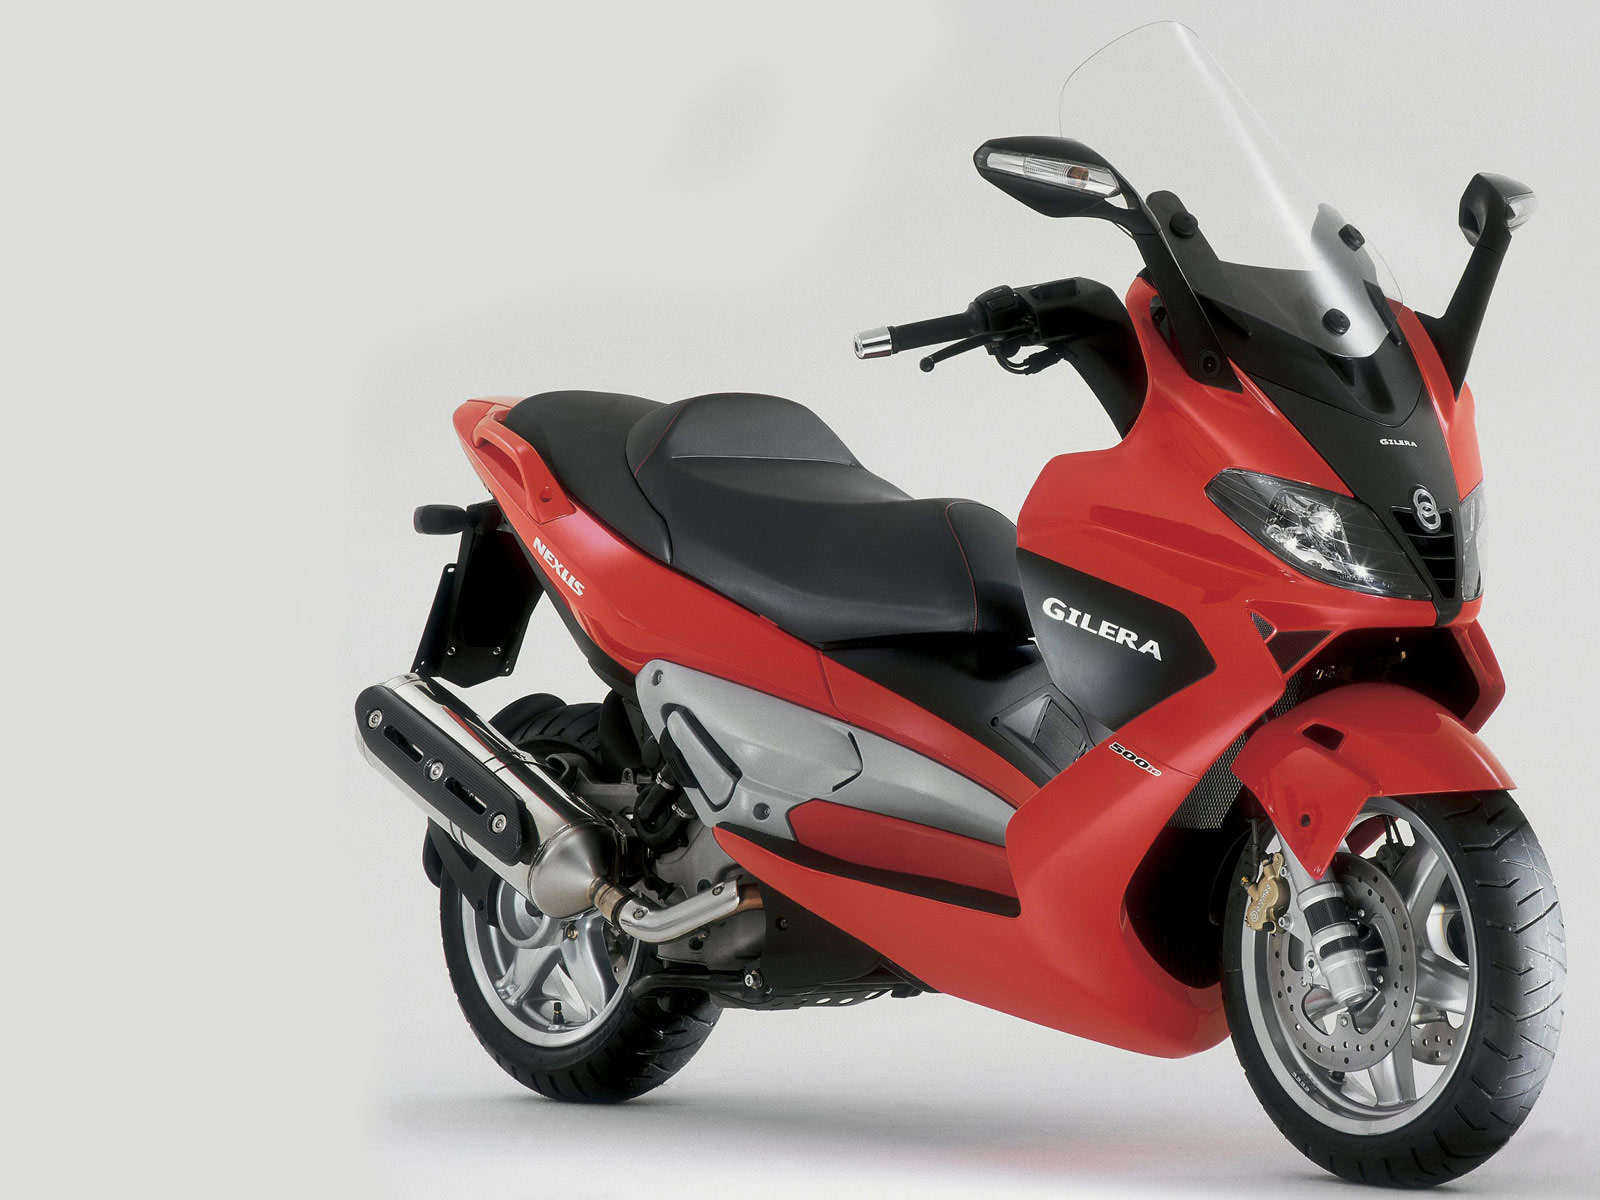 2005 gilera nexus 500 scooter pictures accident lawyers info. Black Bedroom Furniture Sets. Home Design Ideas